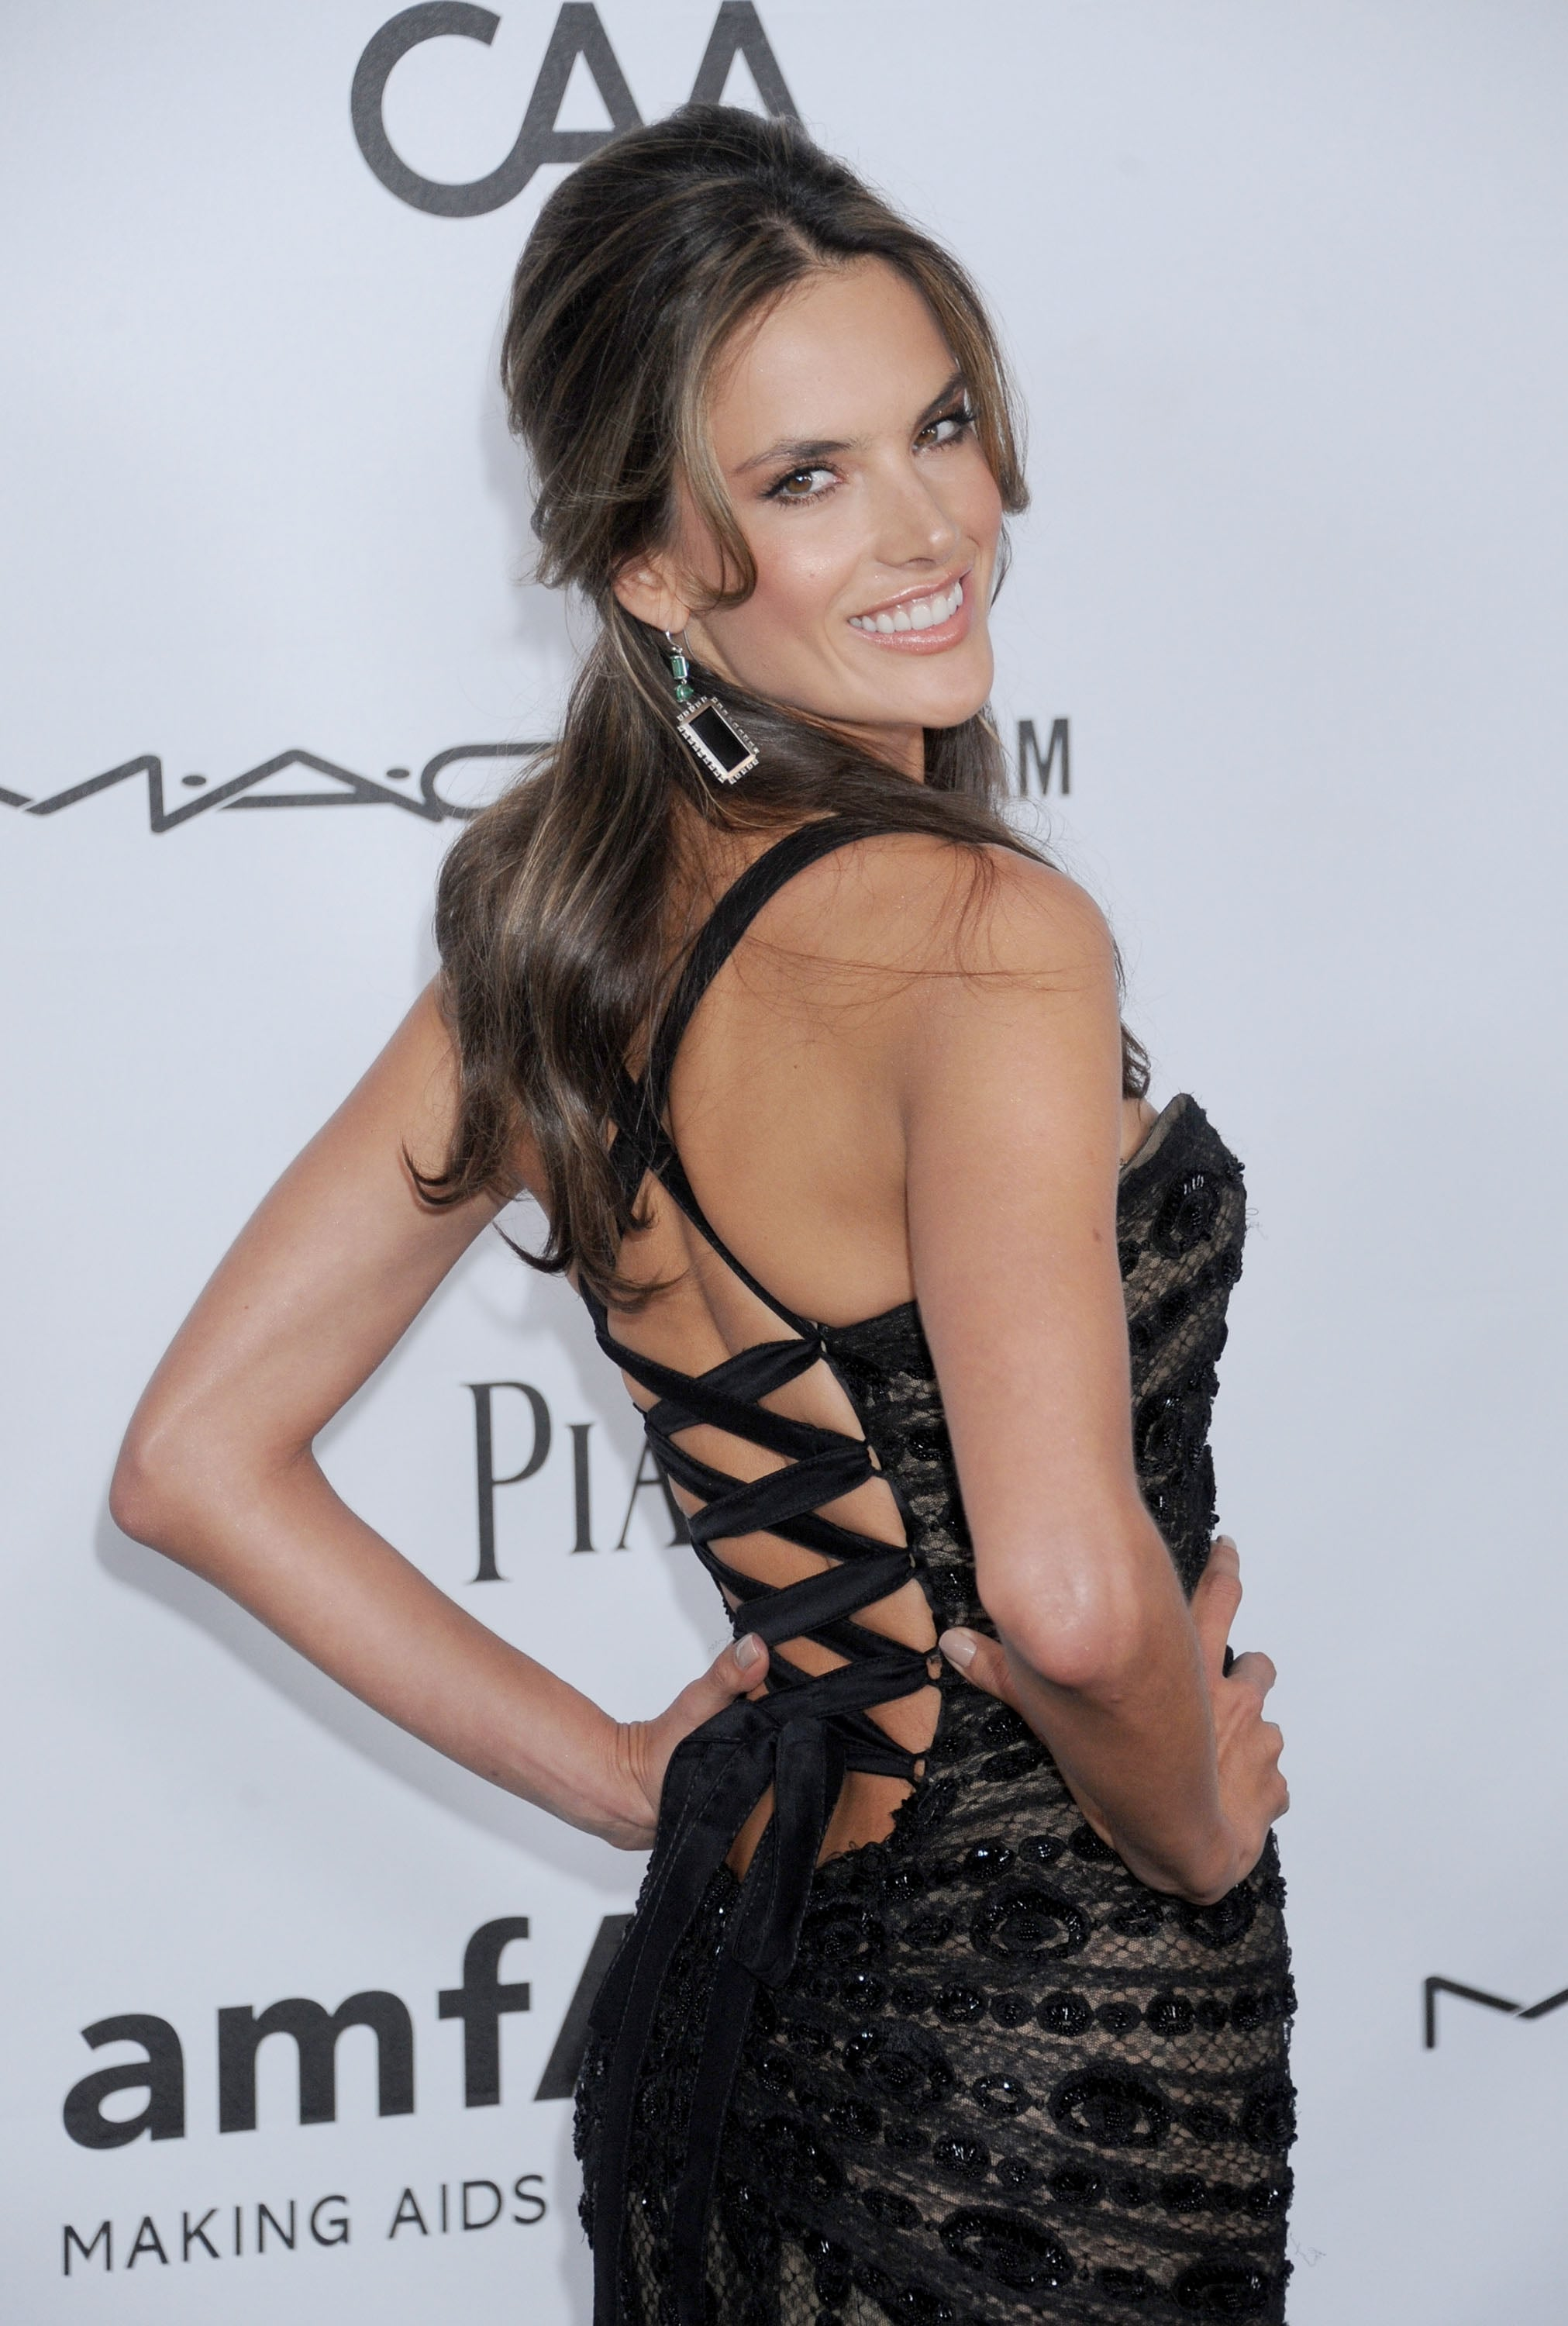 Alessandra Ambrosio stepped out at Milk Studios in LA for the amfAR 3rd Annual Inspiration Gala.